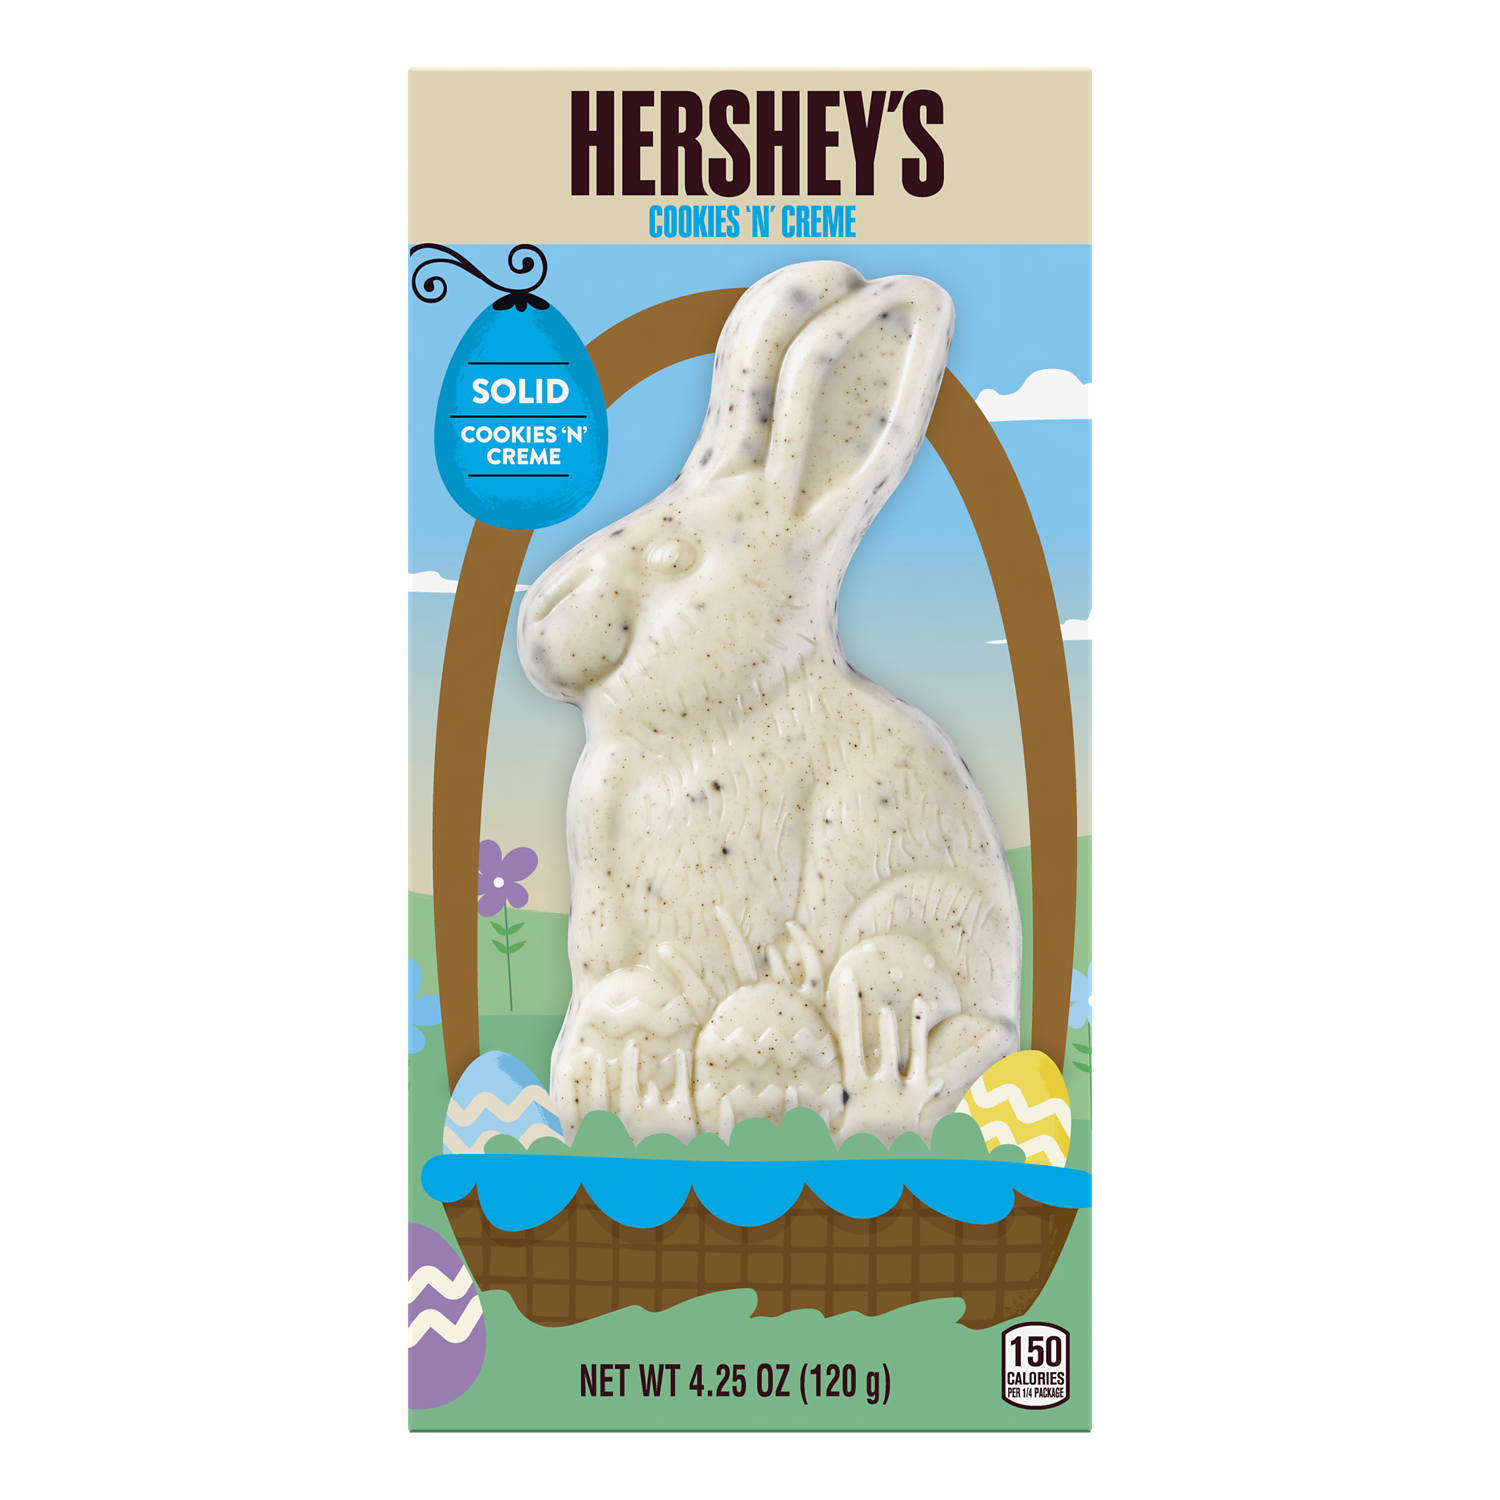 HERSHEY'S Solid COOKIES 'N' CREME Bunny, 4.25 oz box - Front of Package